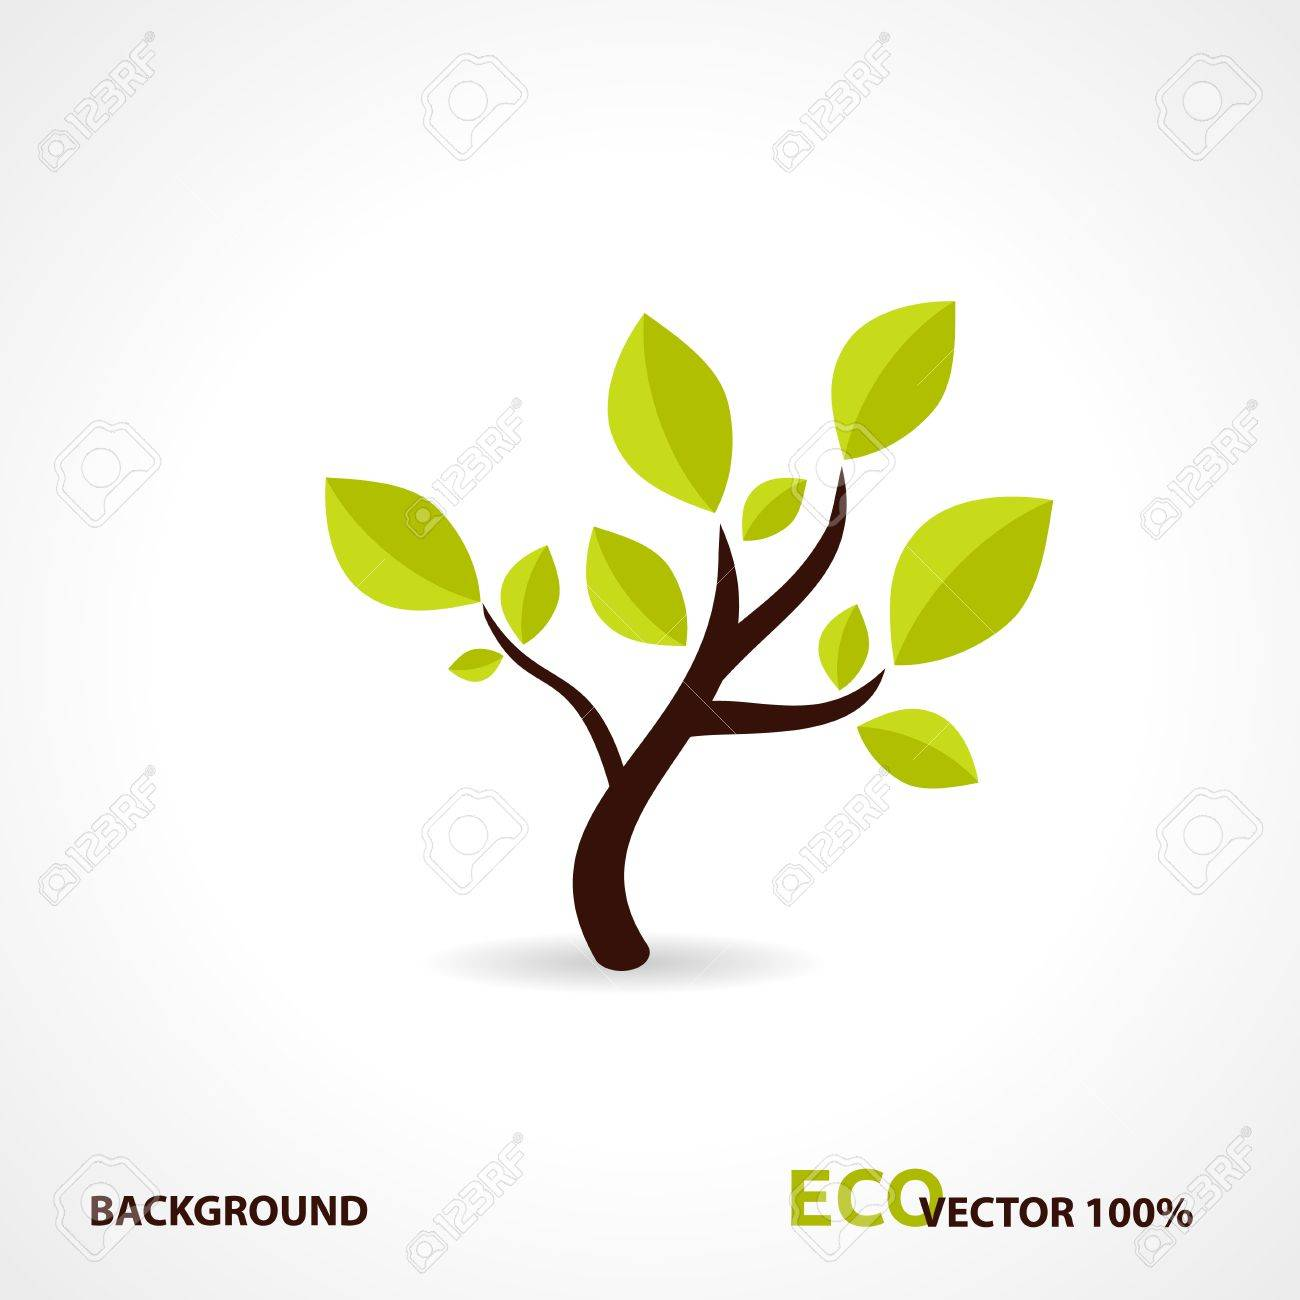 Tree Logo Stock Photos & Pictures. Royalty Free Tree Logo Images ...